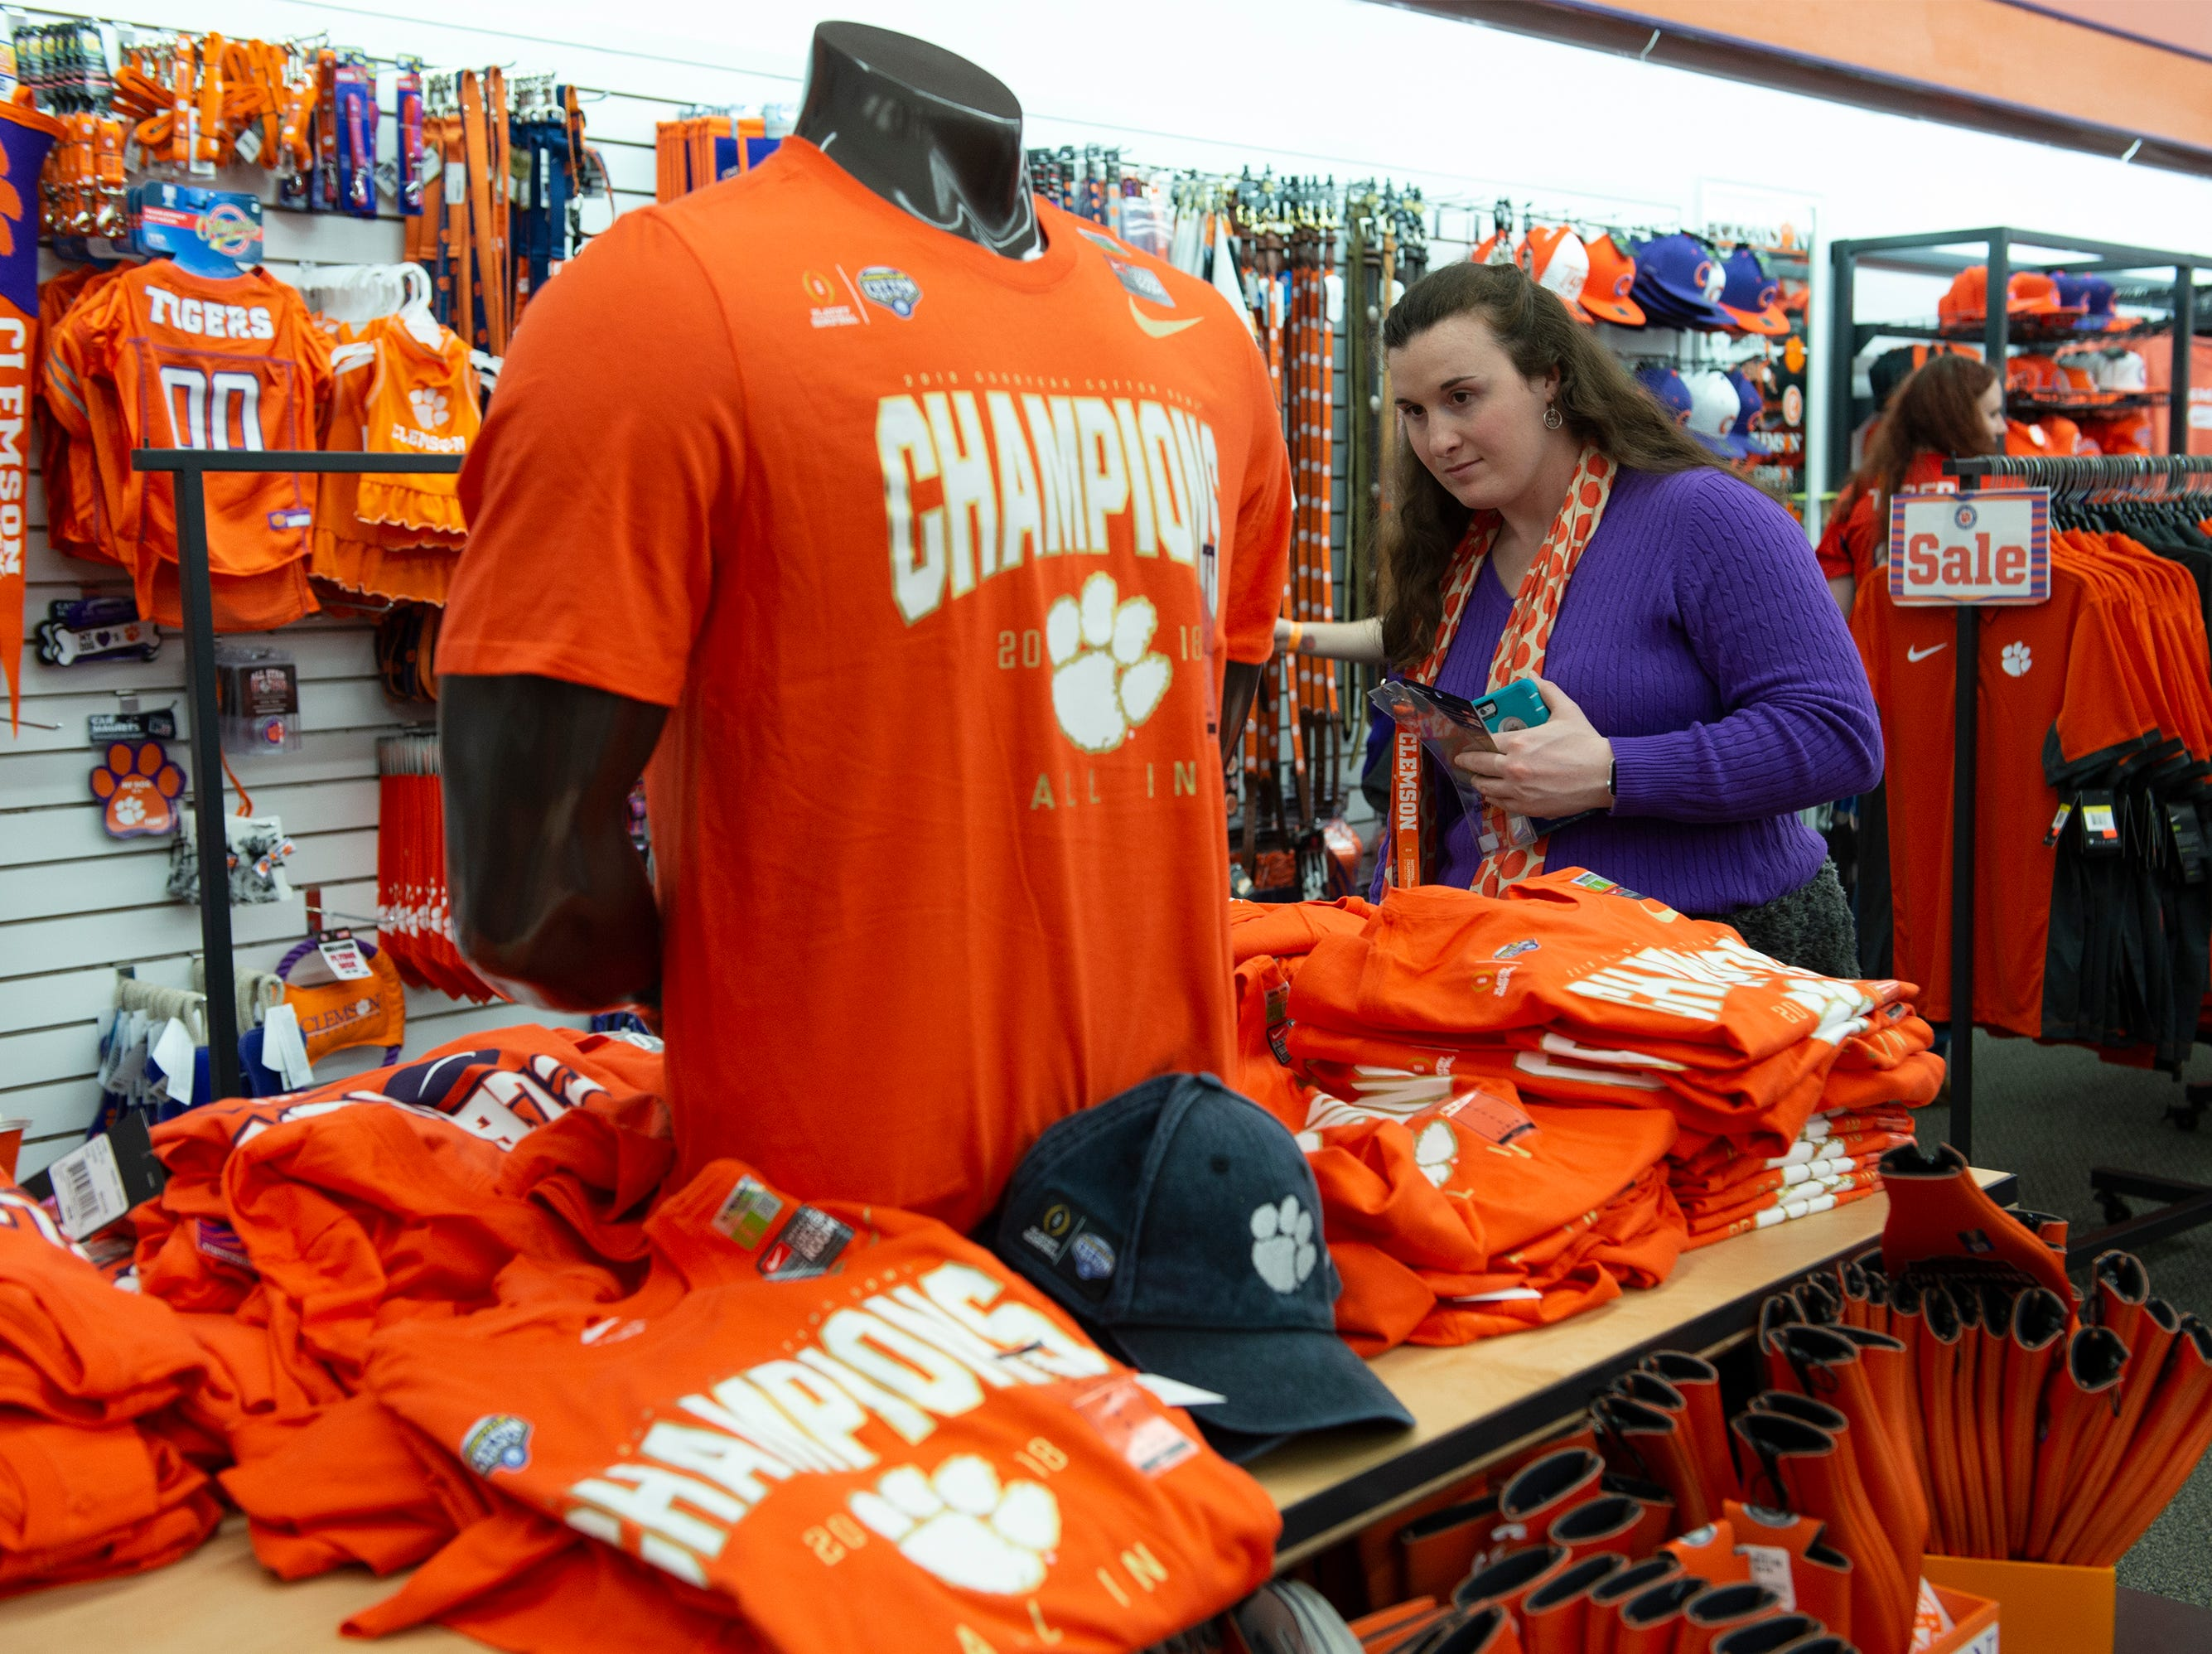 Recent Clemson graduate Kayla Crider shops for championship merchandise at The Tiger Sports Shop on College Avenue after Clemson defeated Alabama in the College Football Playoff National Championship Monday, Jan. 7, 2019.